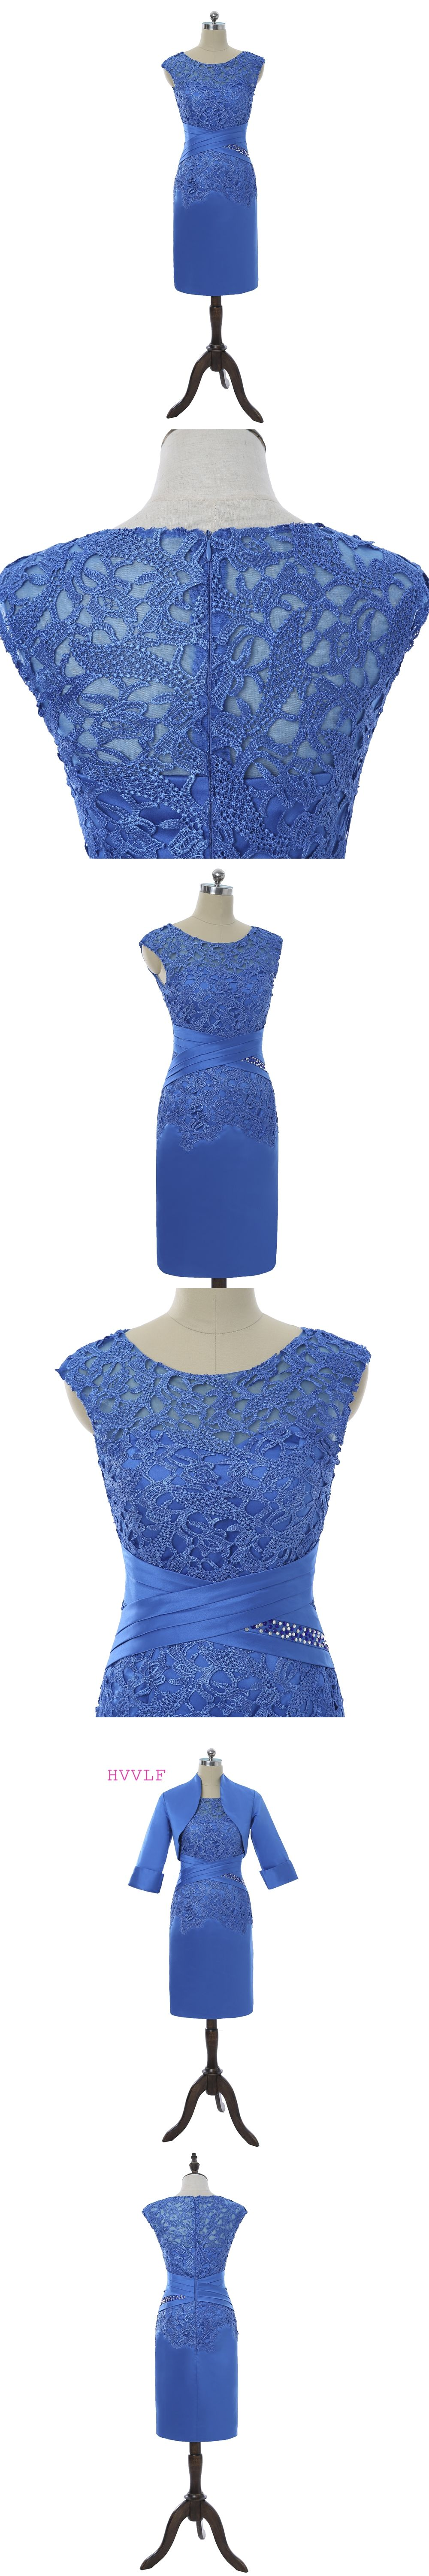 Mother bride dresses summer garden wedding  Royal Blue  Mother Of The Bride Dresses Sheath Cap Sleeves Lace